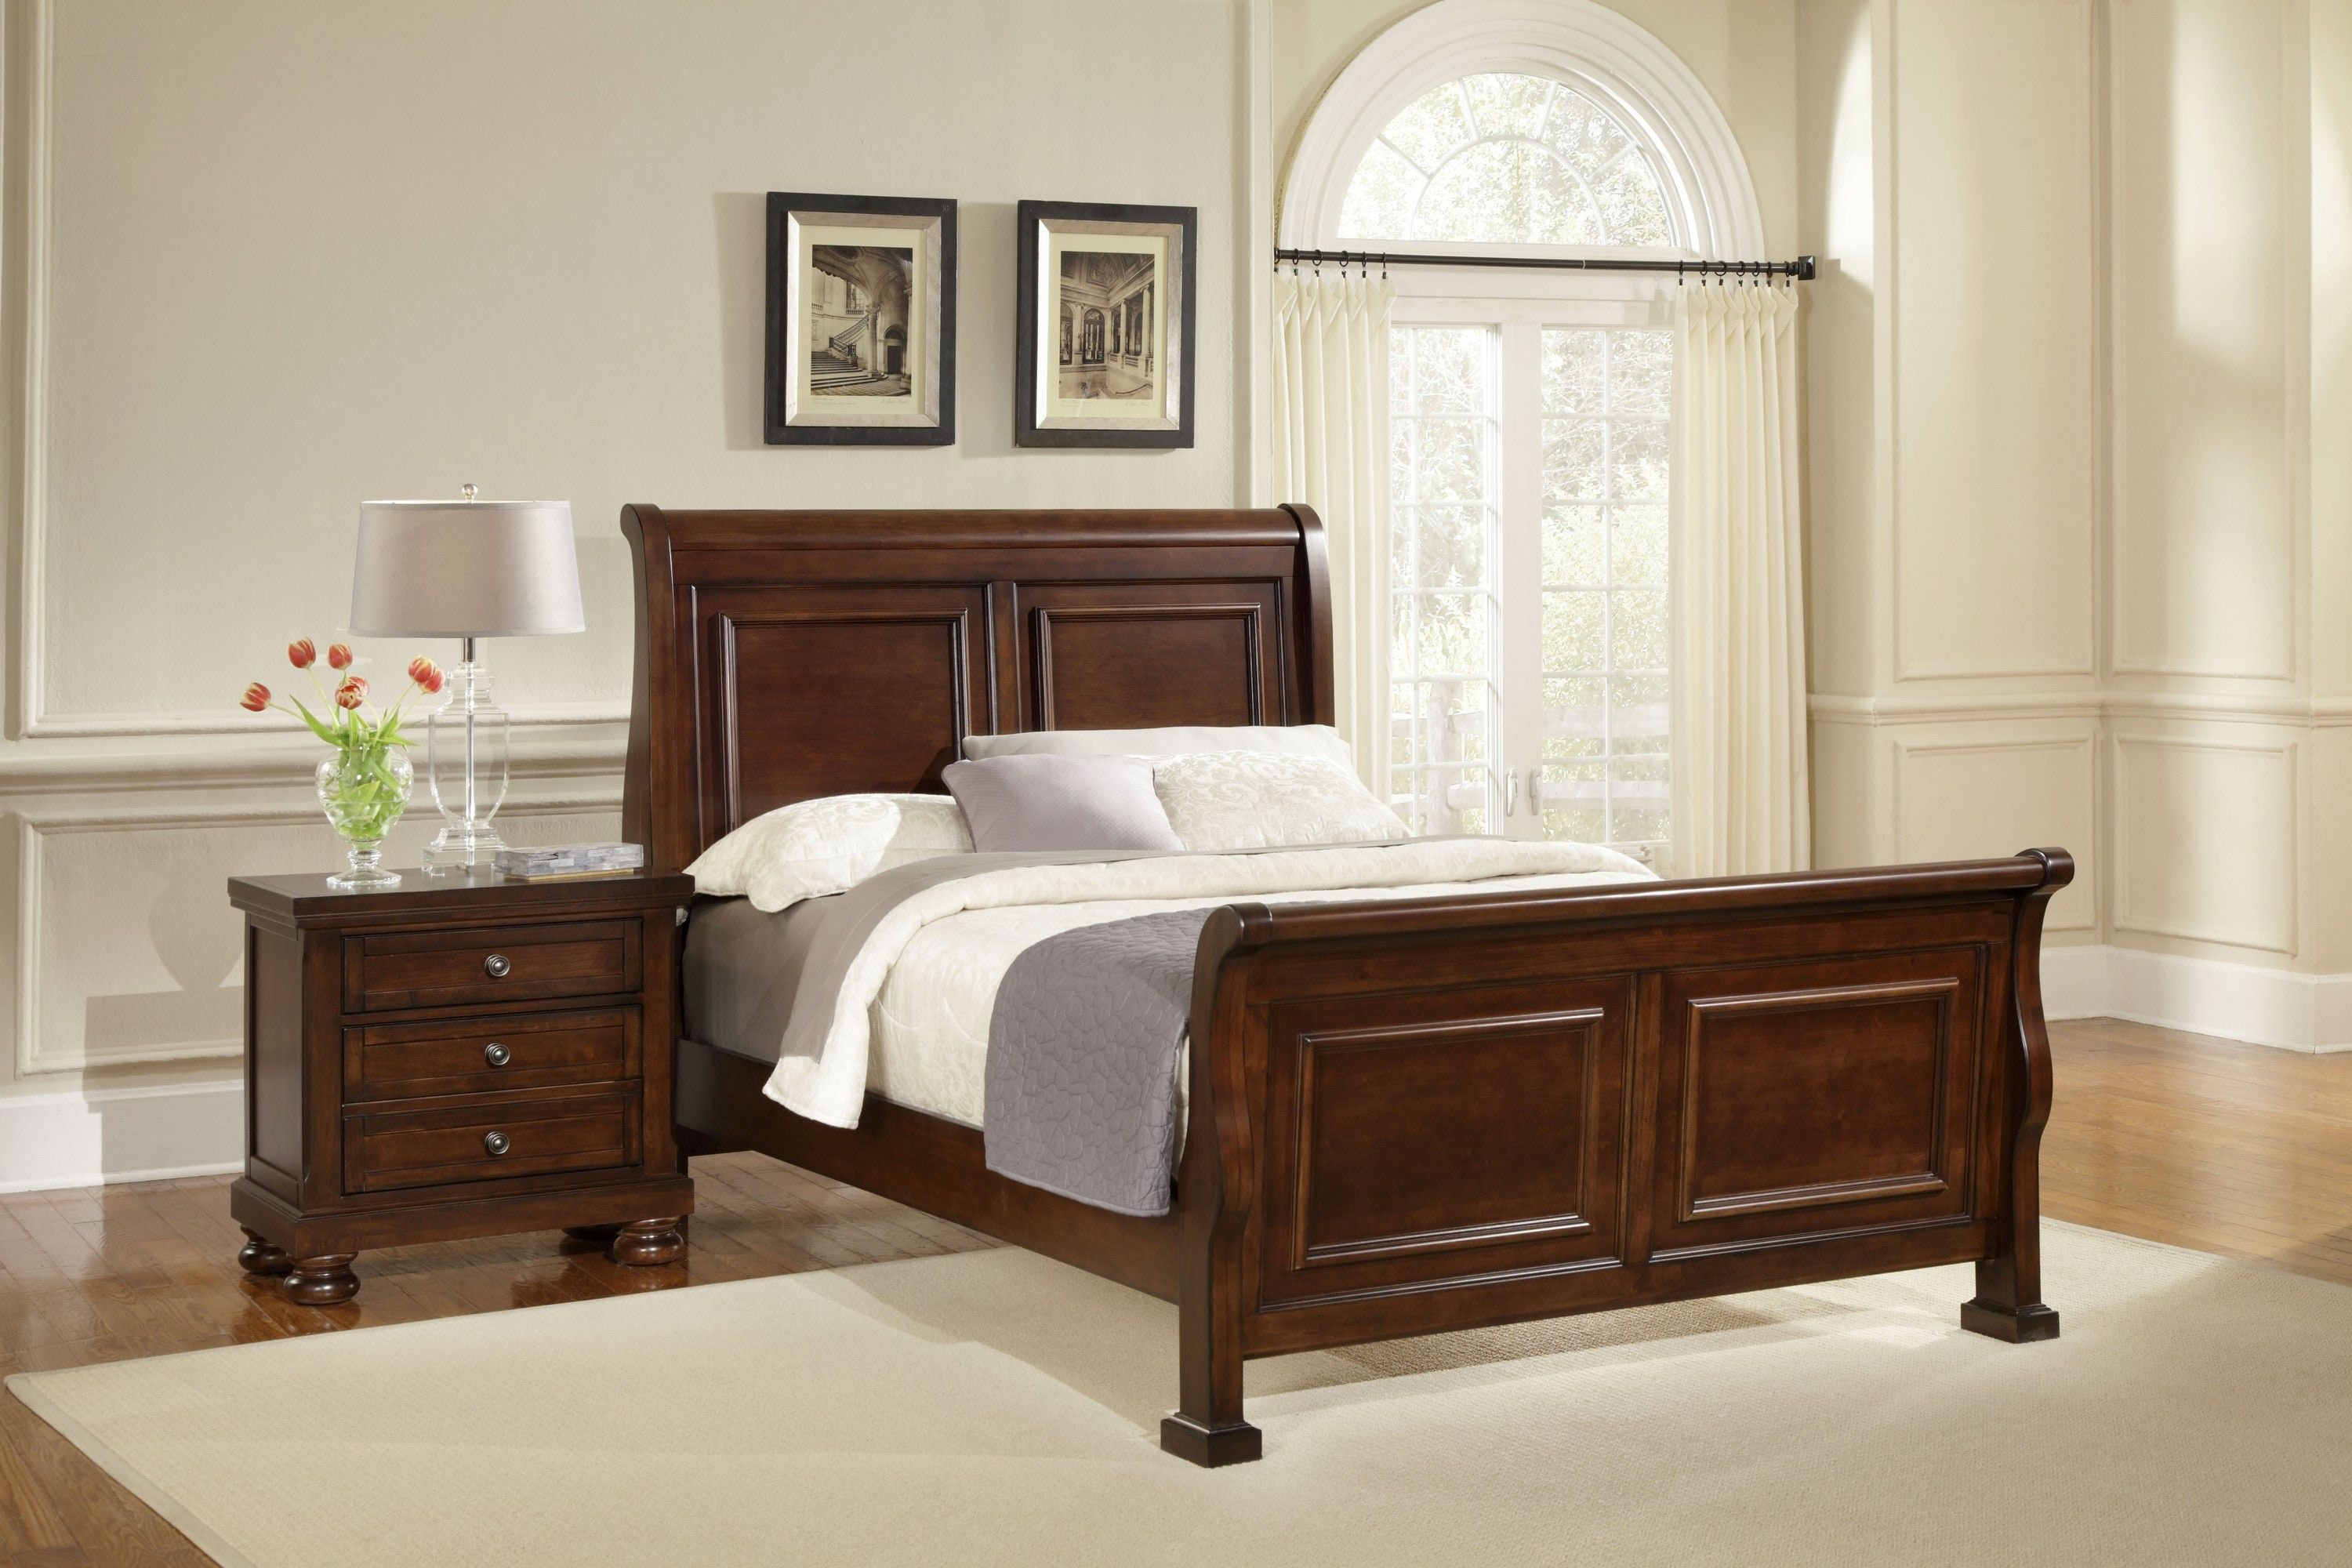 Superieur Vaughan Bassett Furniture Company Reflections Sleigh King Bed G54715